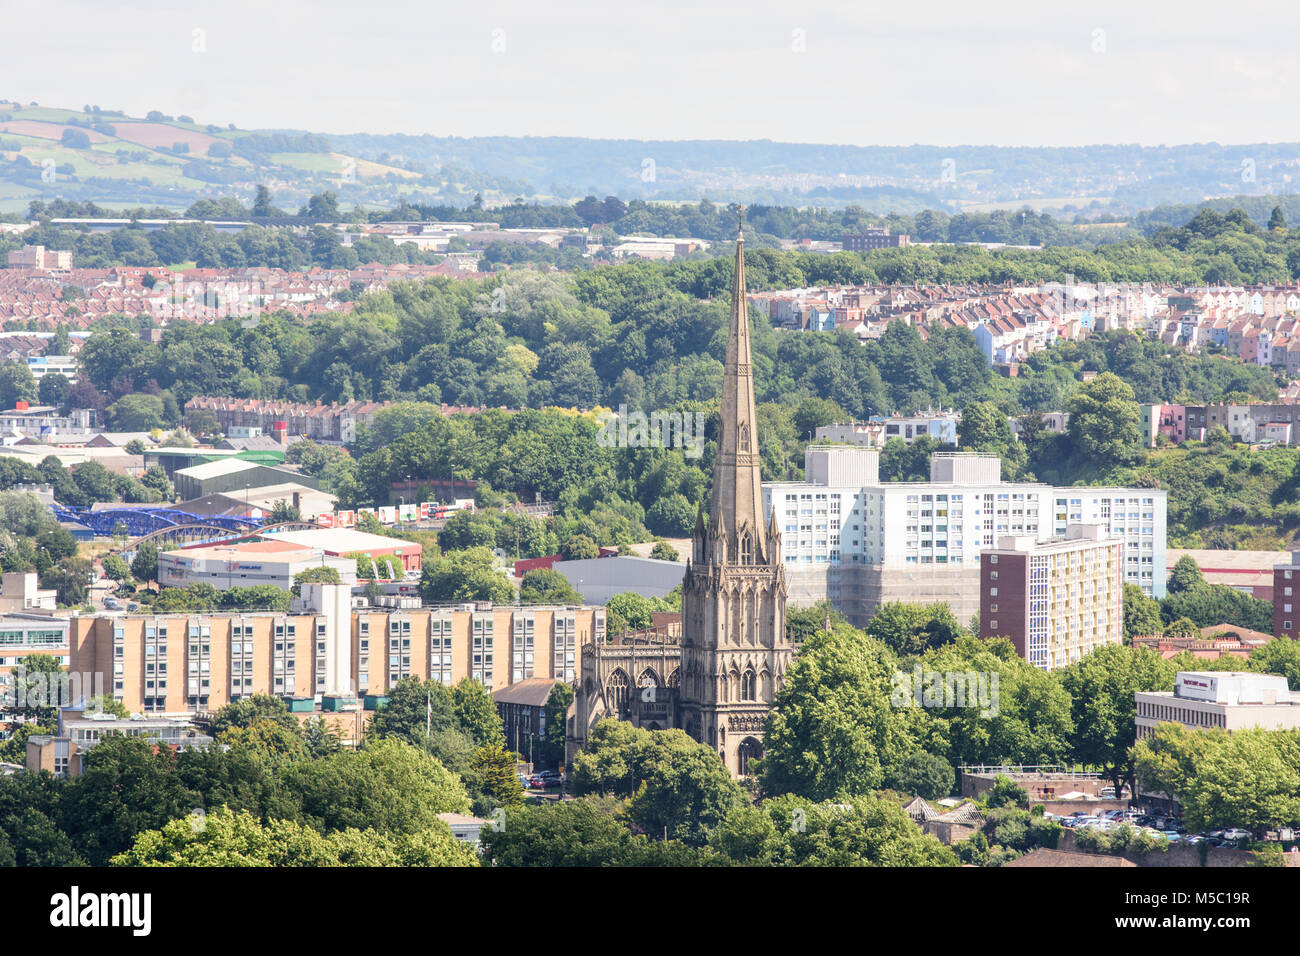 Bristol, England, UK - July 17, 2016: The tall spire of St Mary Redcliffe church and council housing blocks of the - Stock Image